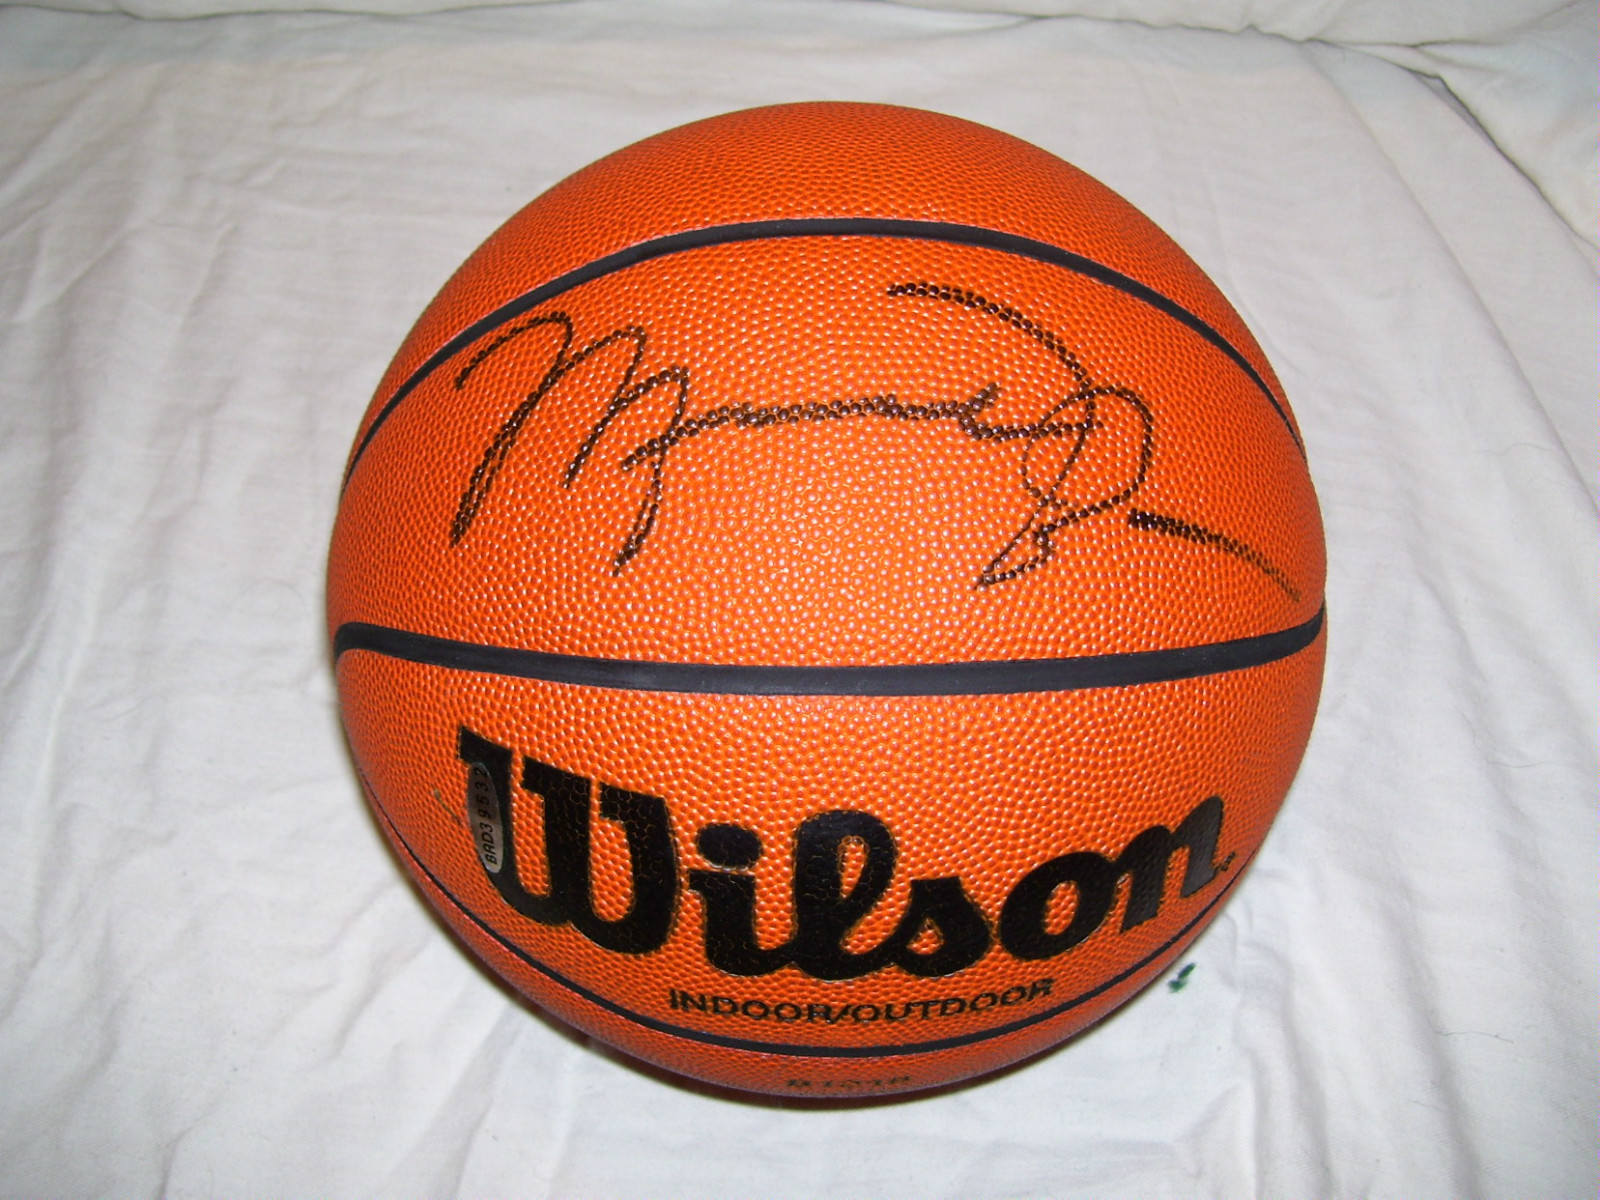 109452e9ff892d Signed Basketball Pricing  Active Listings for Michael Jordan Signed  Basketballs · Michael Jordan Card and Memorabilia ...